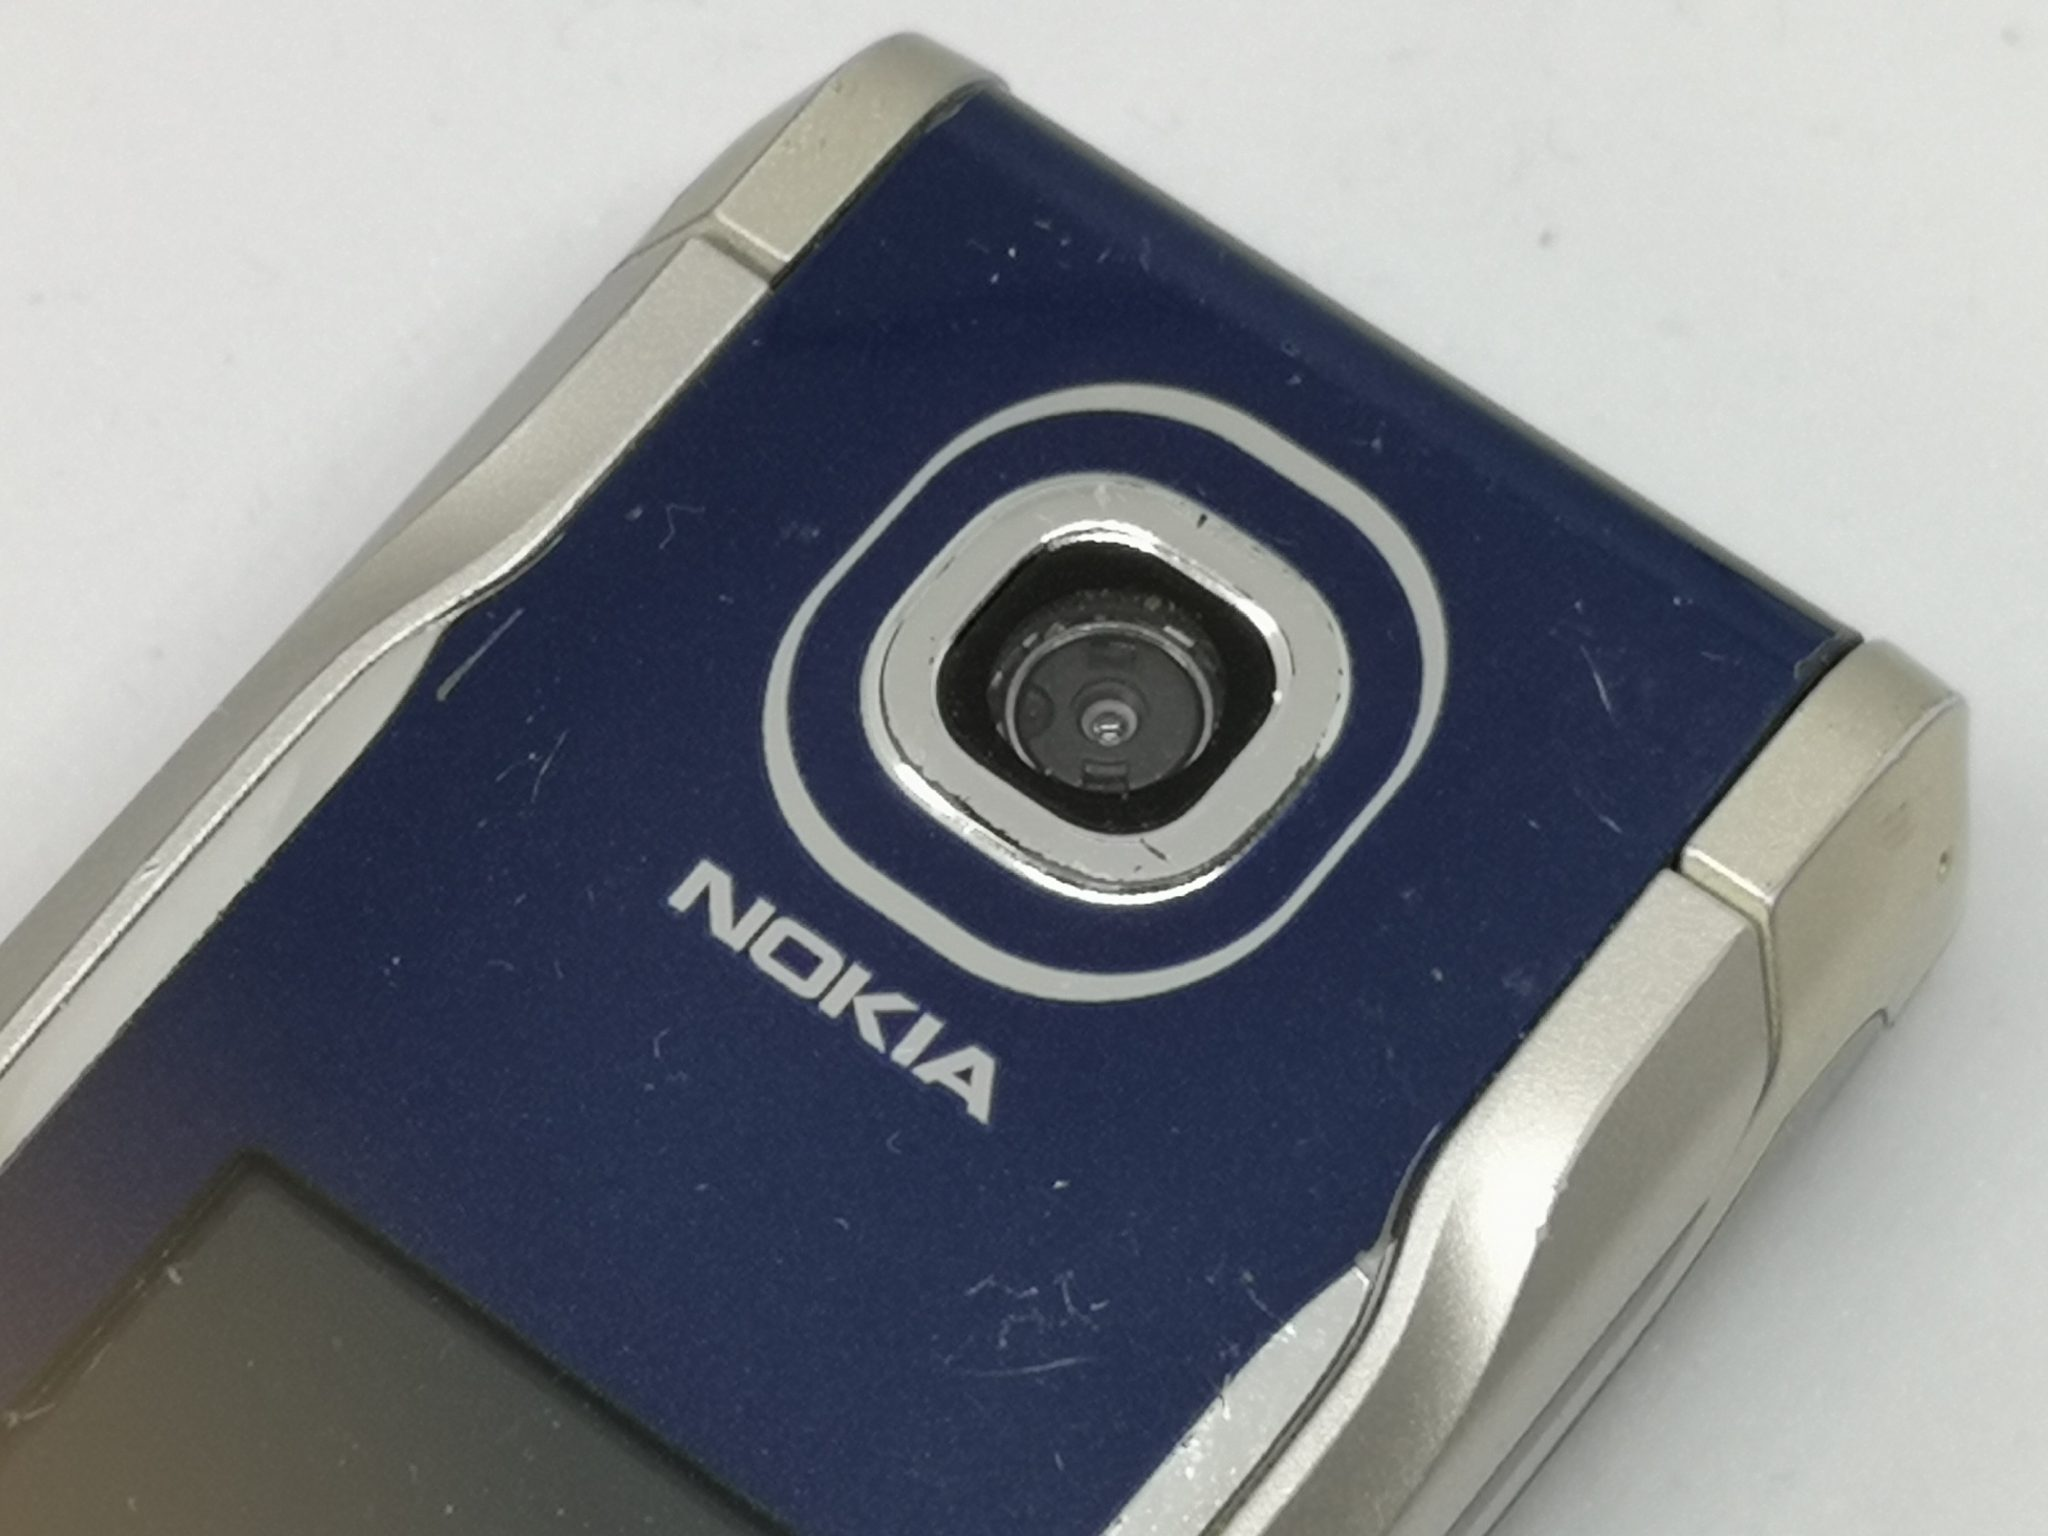 Nokia 2760 Review: Mid Range Flip Mobile Phone